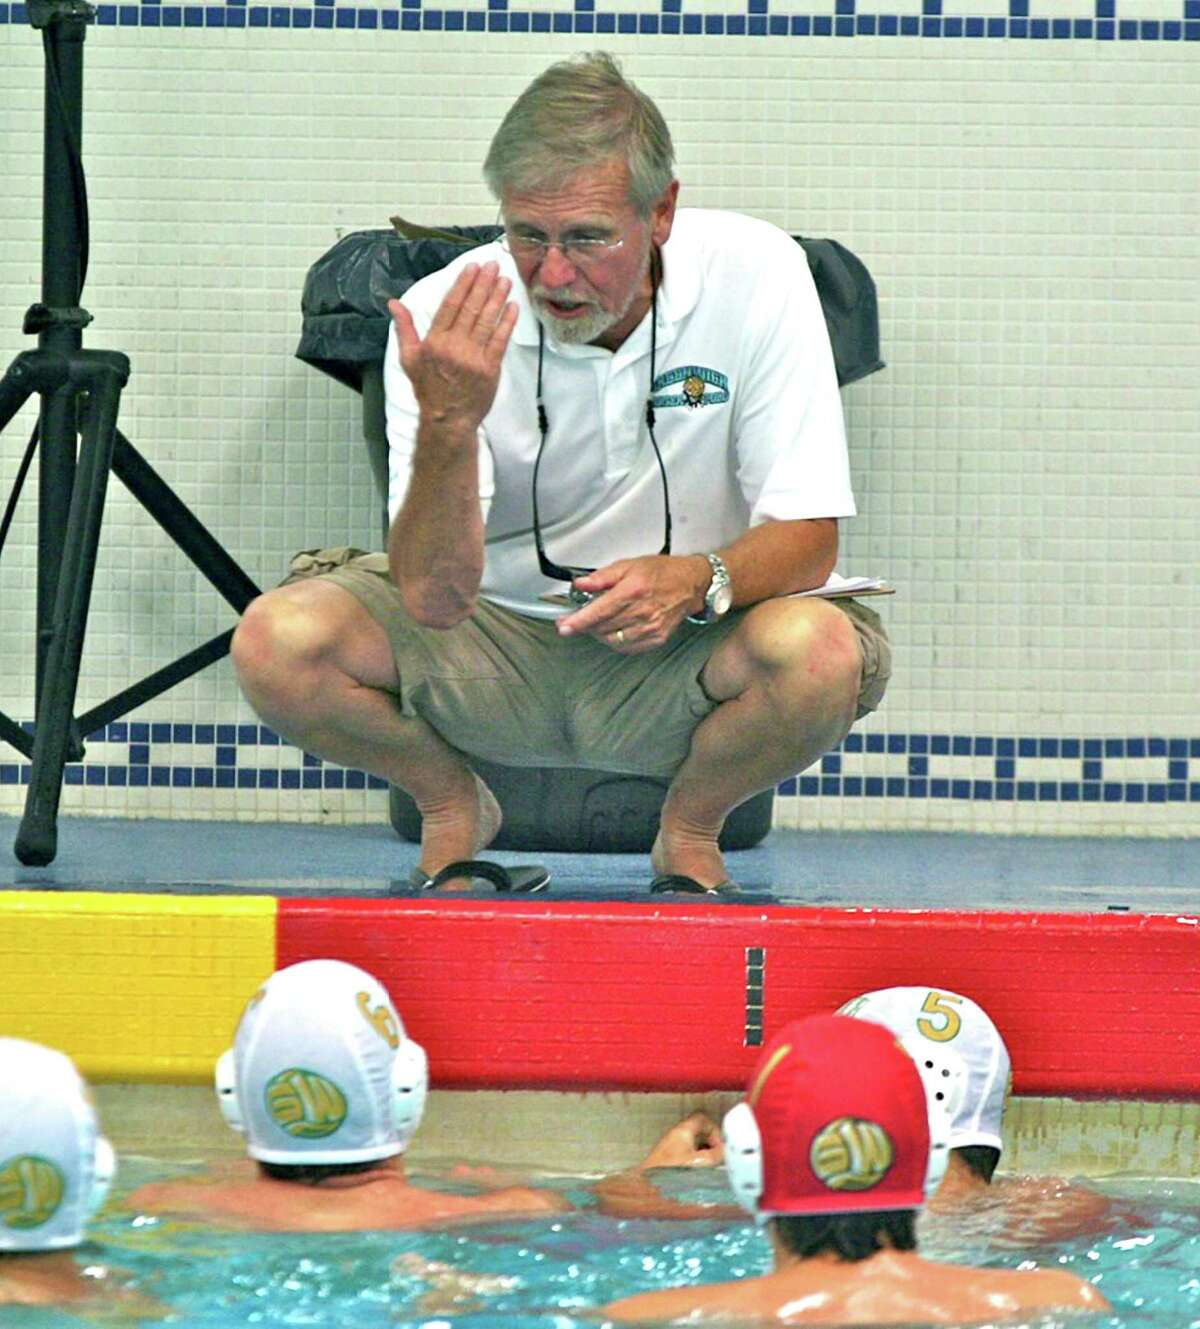 Greenwich Water Polo coach Terry Lowe talks to his team at the recent Junior Olympic Qualifier held at the United States Naval Academy in Annapolis, MD.